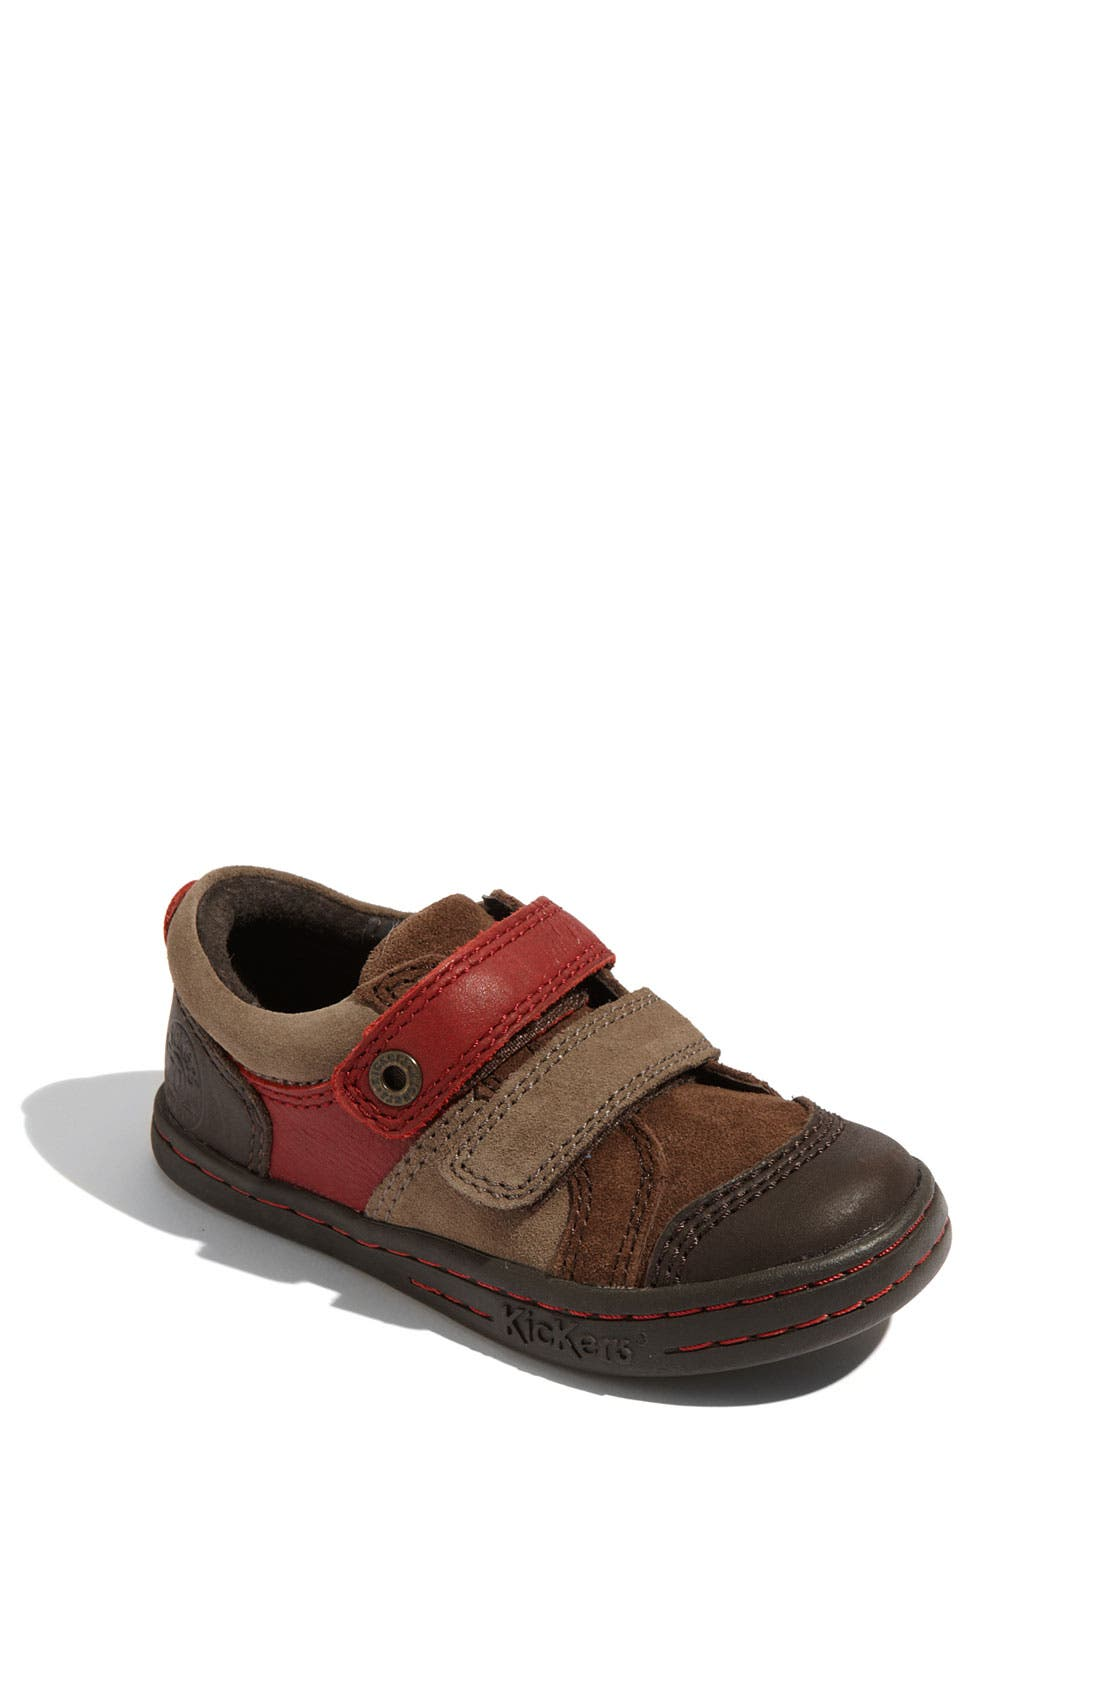 Alternate Image 1 Selected - Kickers 'Jump' Shoe (Toddler)